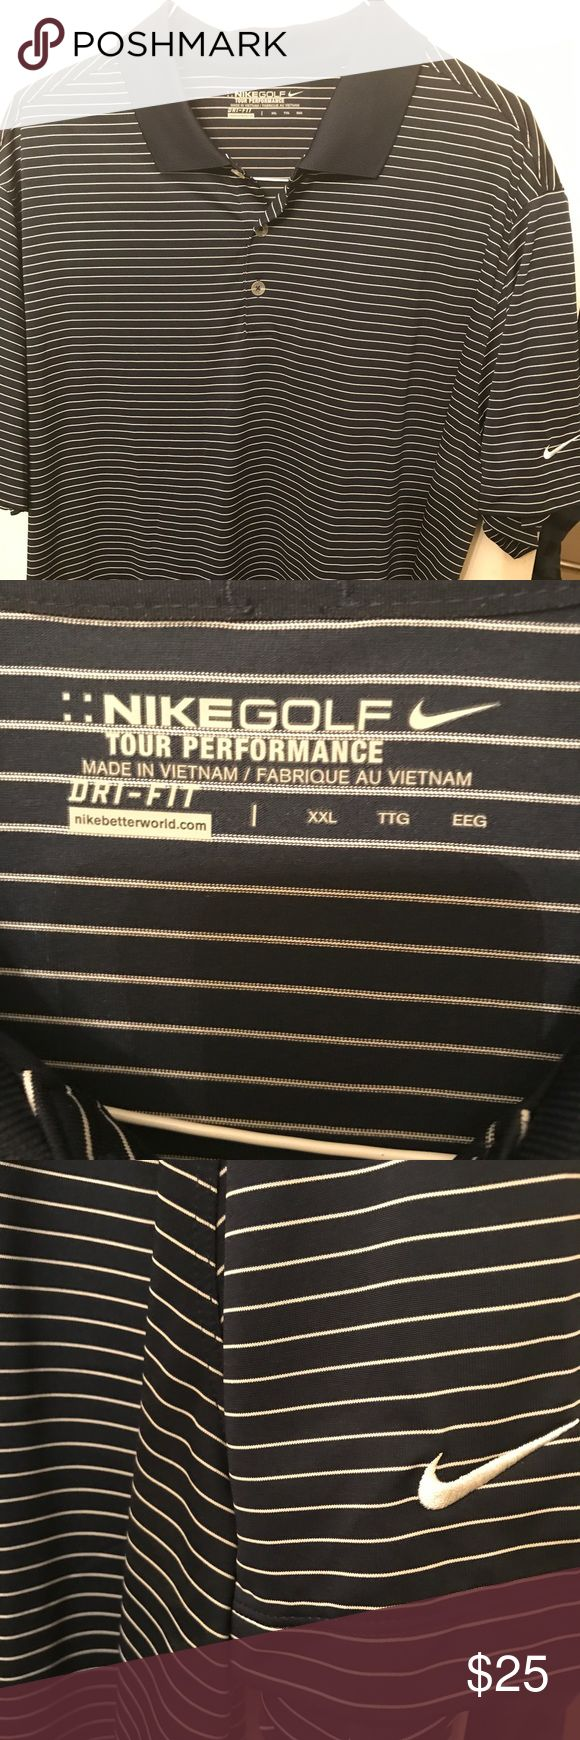 M 2XL Nike polo shirt in excellent condition. Very nice Adidas blue and white polo shirt in excellent condition. No rips tears or stains. Nike Shirts Polos